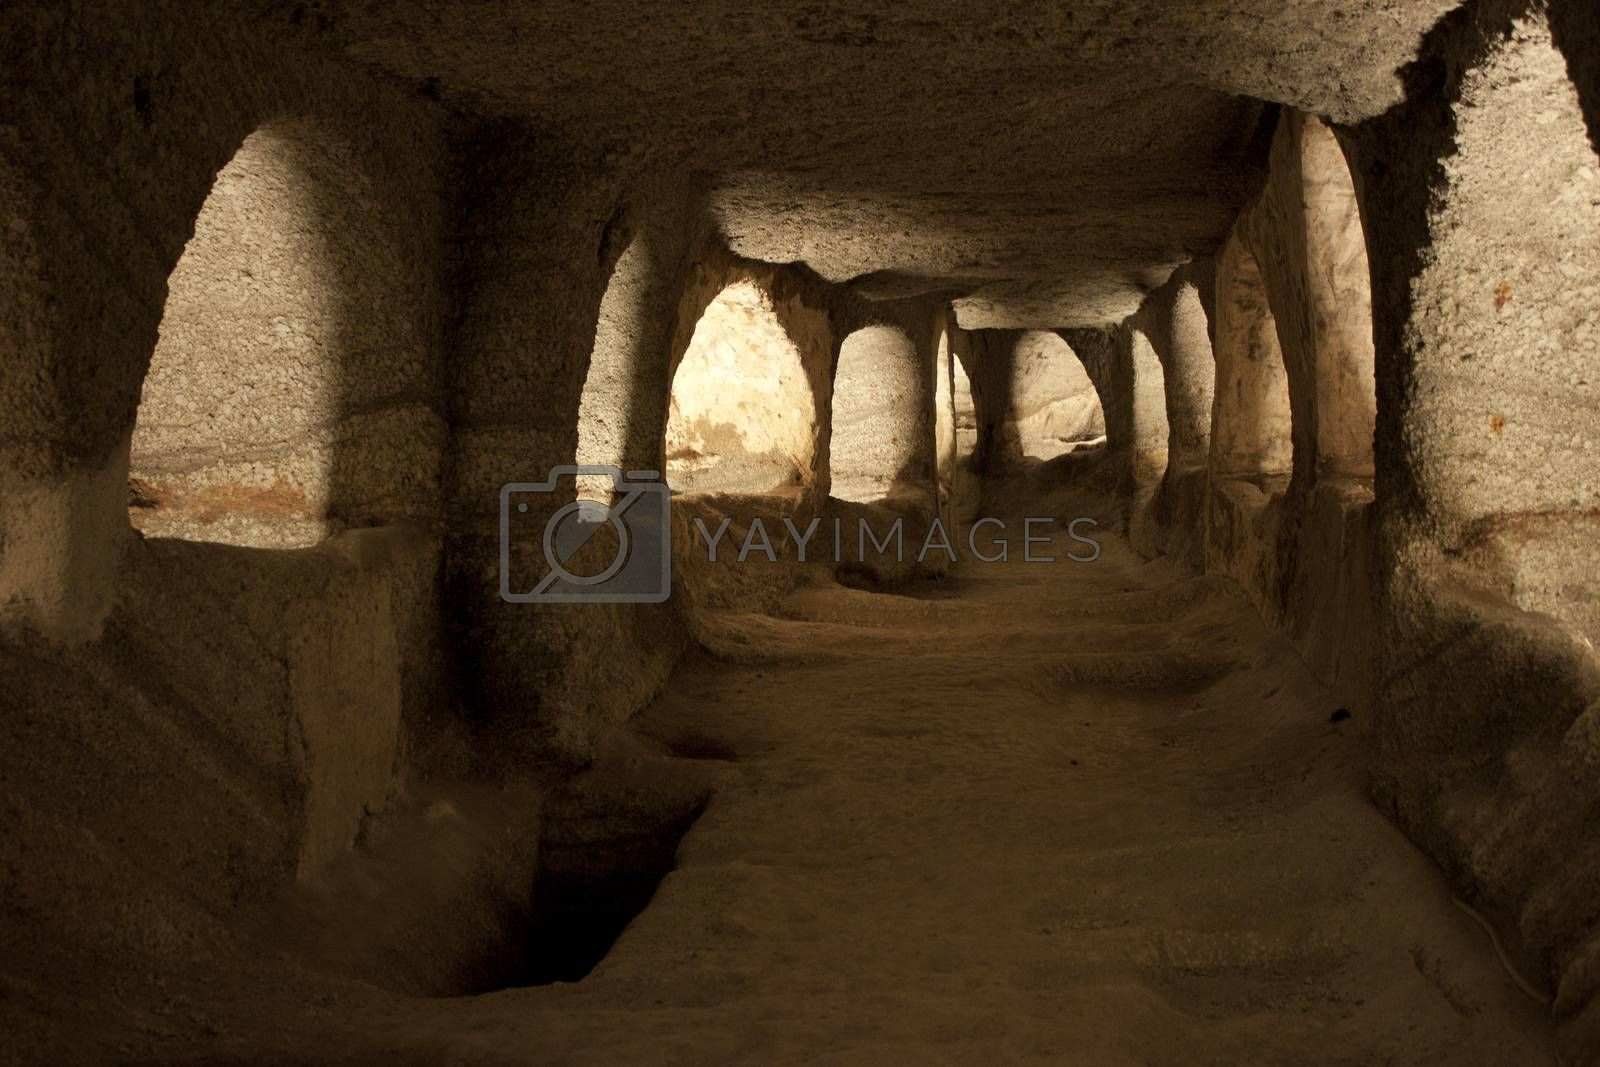 Royalty free image of Catacombs by Arsen